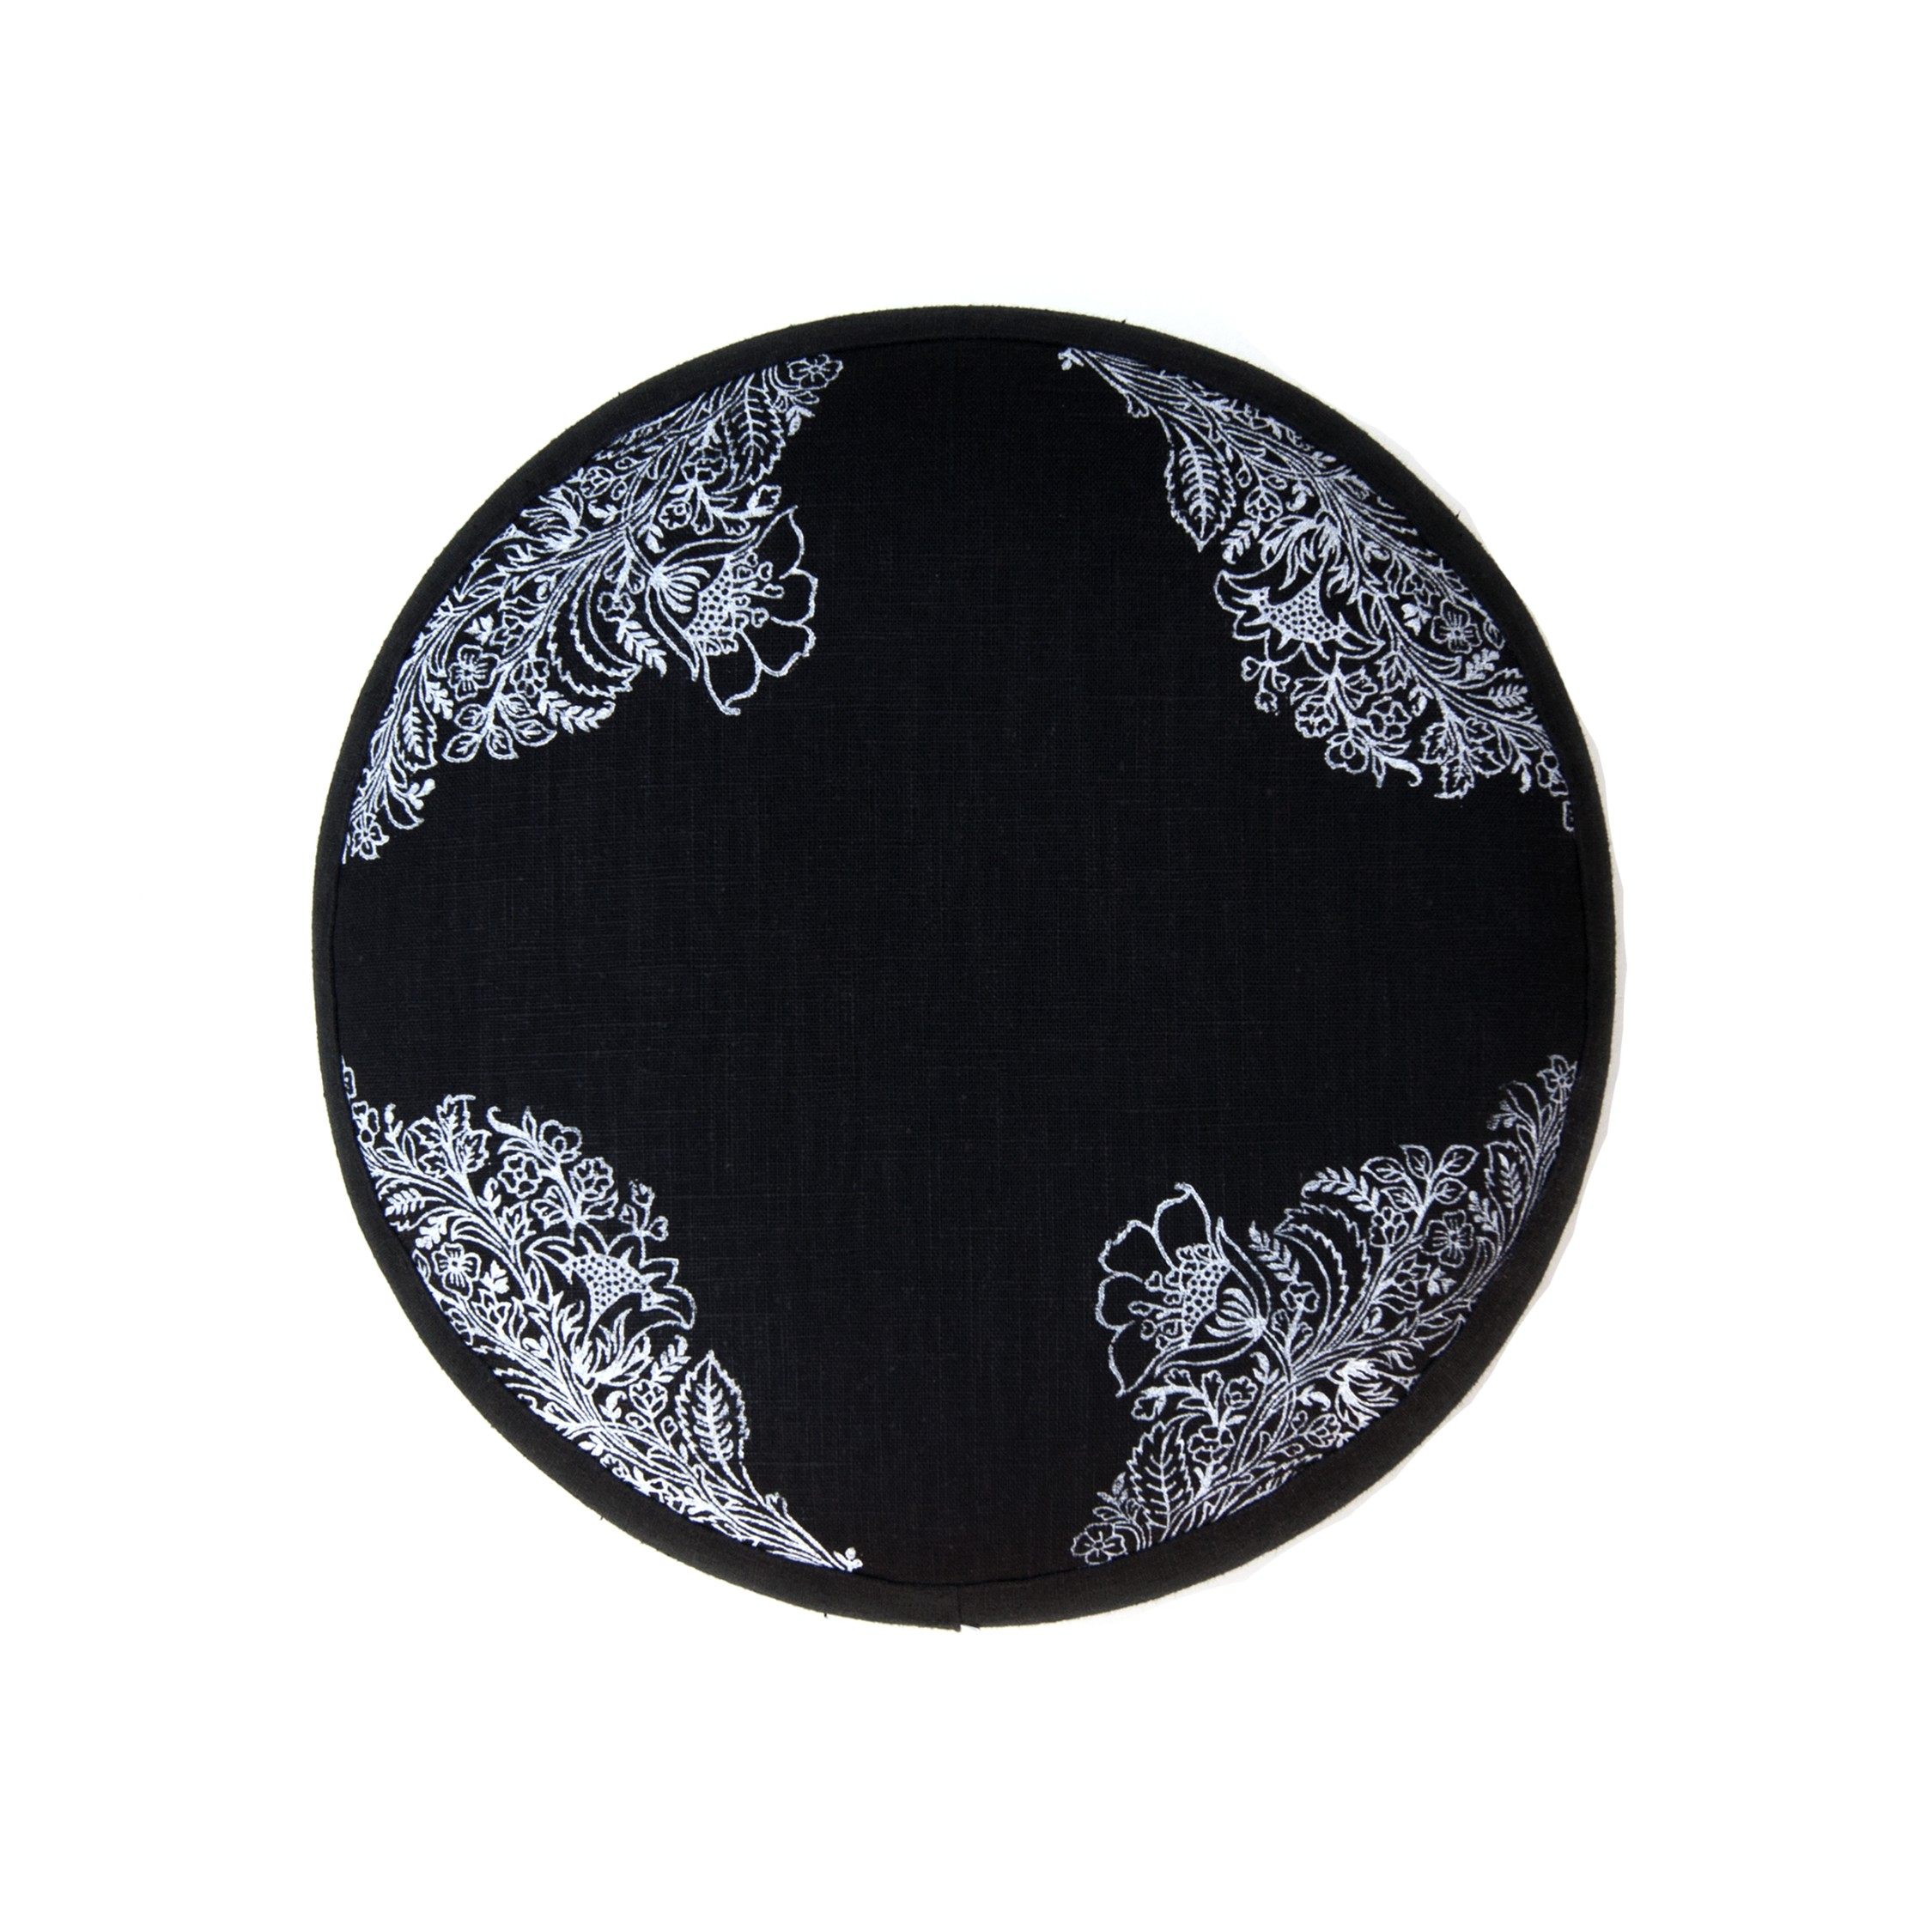 Meditation cushion in black with floral print